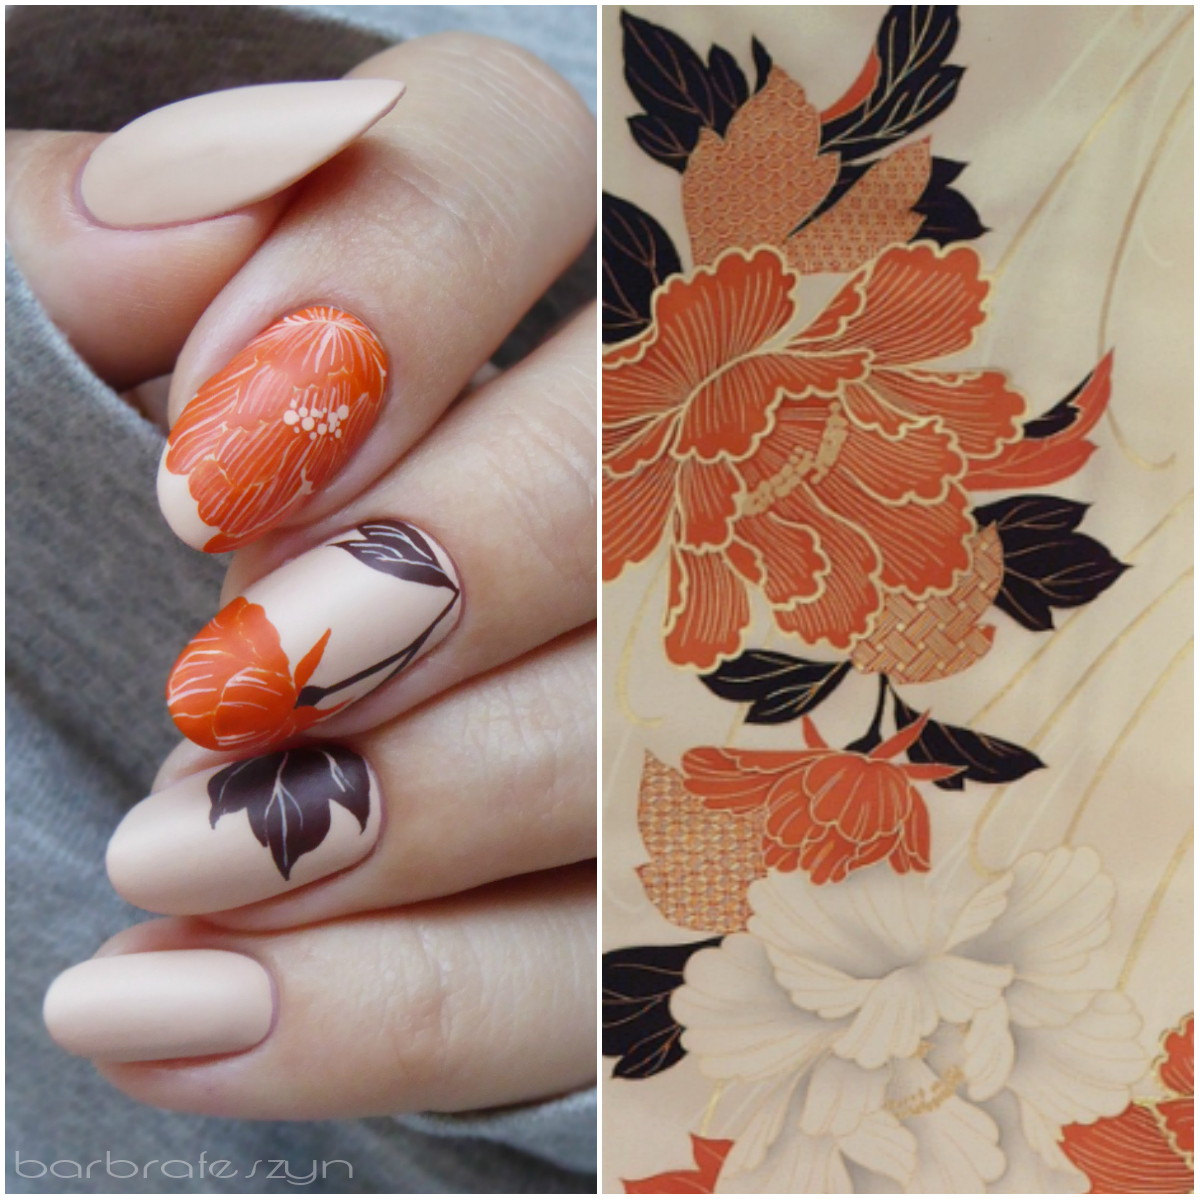 Freehand flowers inspired by japanese vase